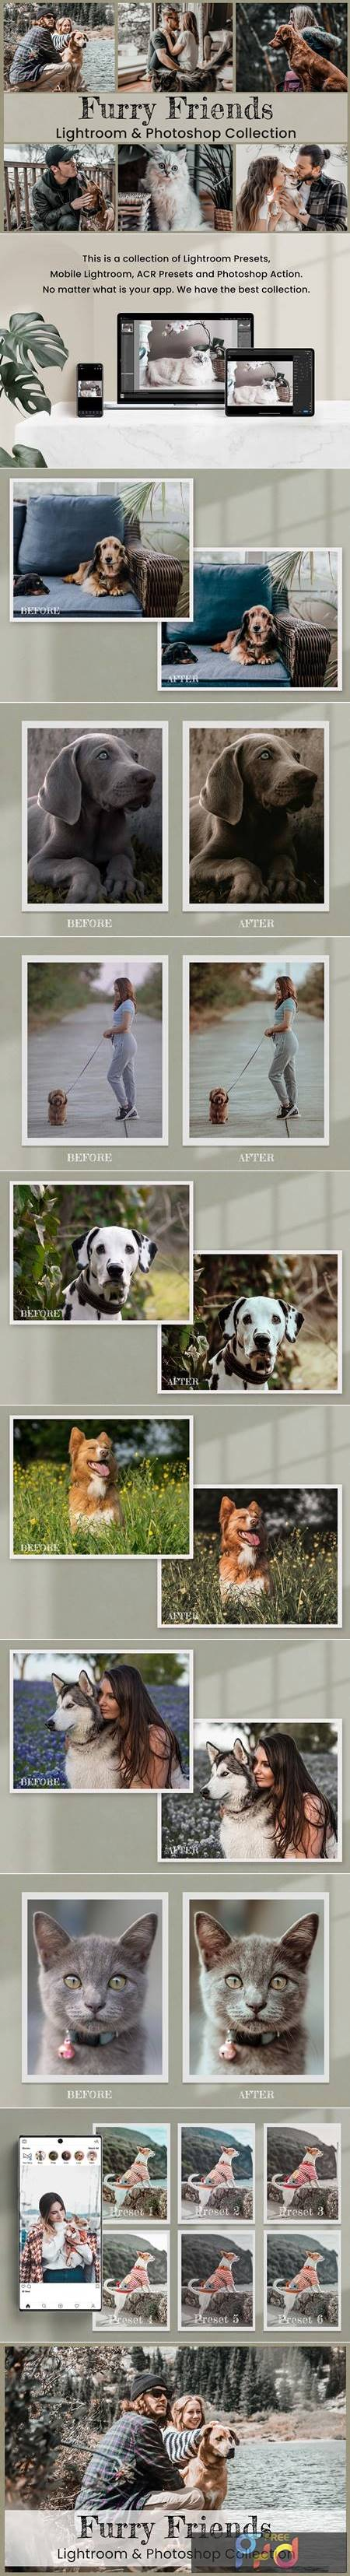 15 Furry Friends Collection 6204182 1